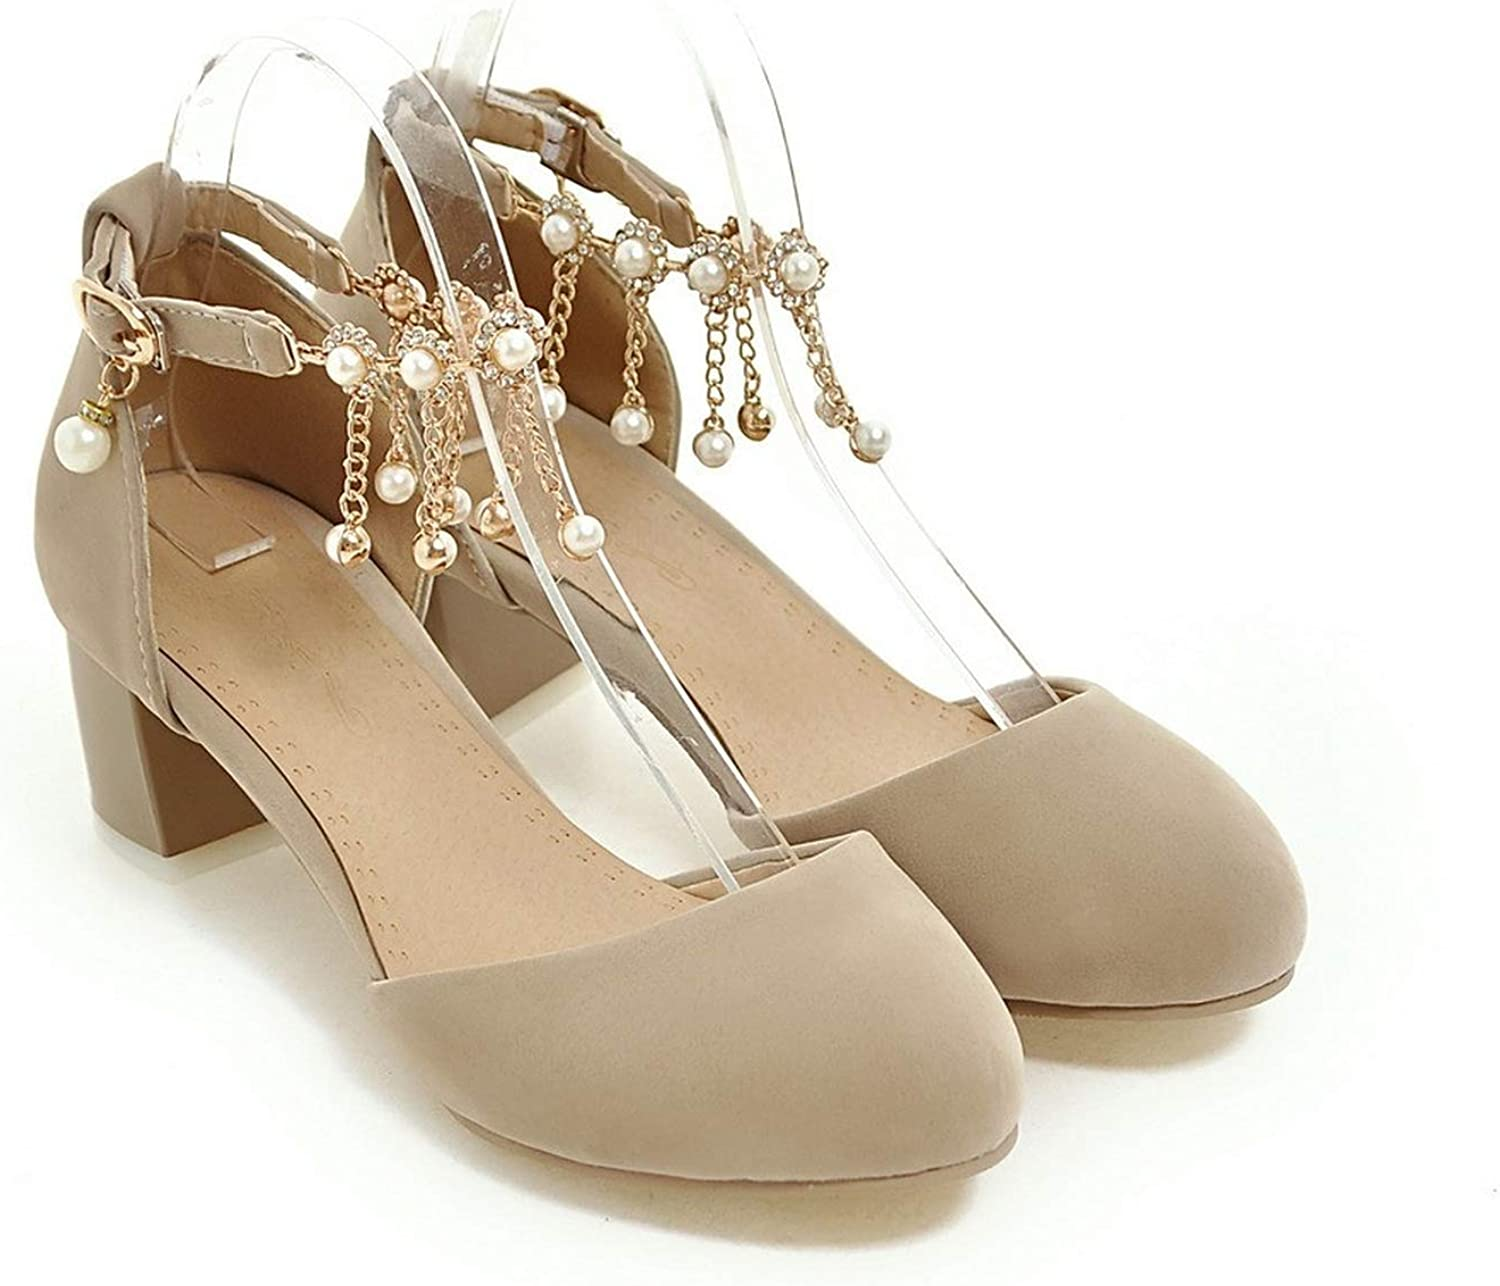 Pumps Women Shoes Sweet Bead Round Toe Party Shoes Comfortable Square Heels Shoes Woman,Beige,10